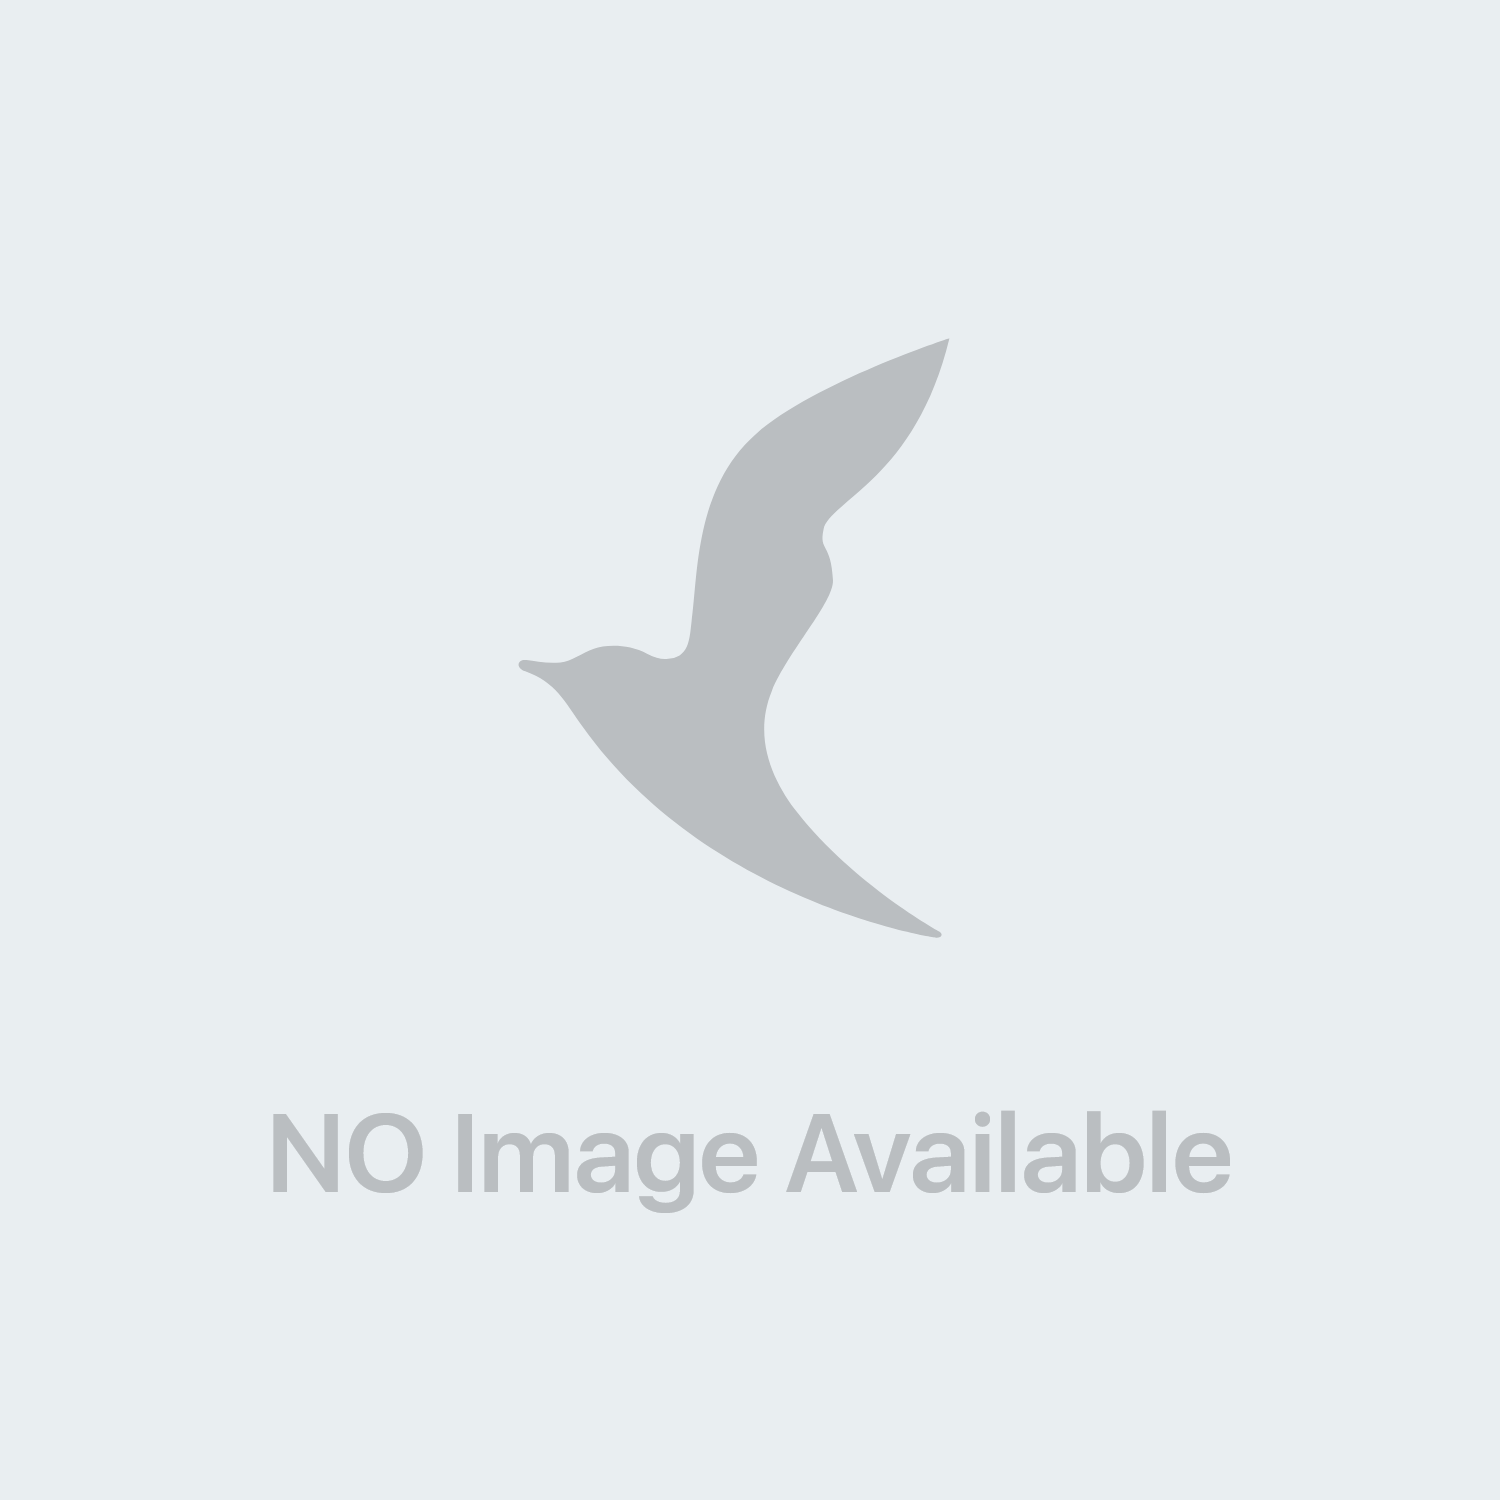 Enemac Flacone 130 ml 16,1+6/100 ml